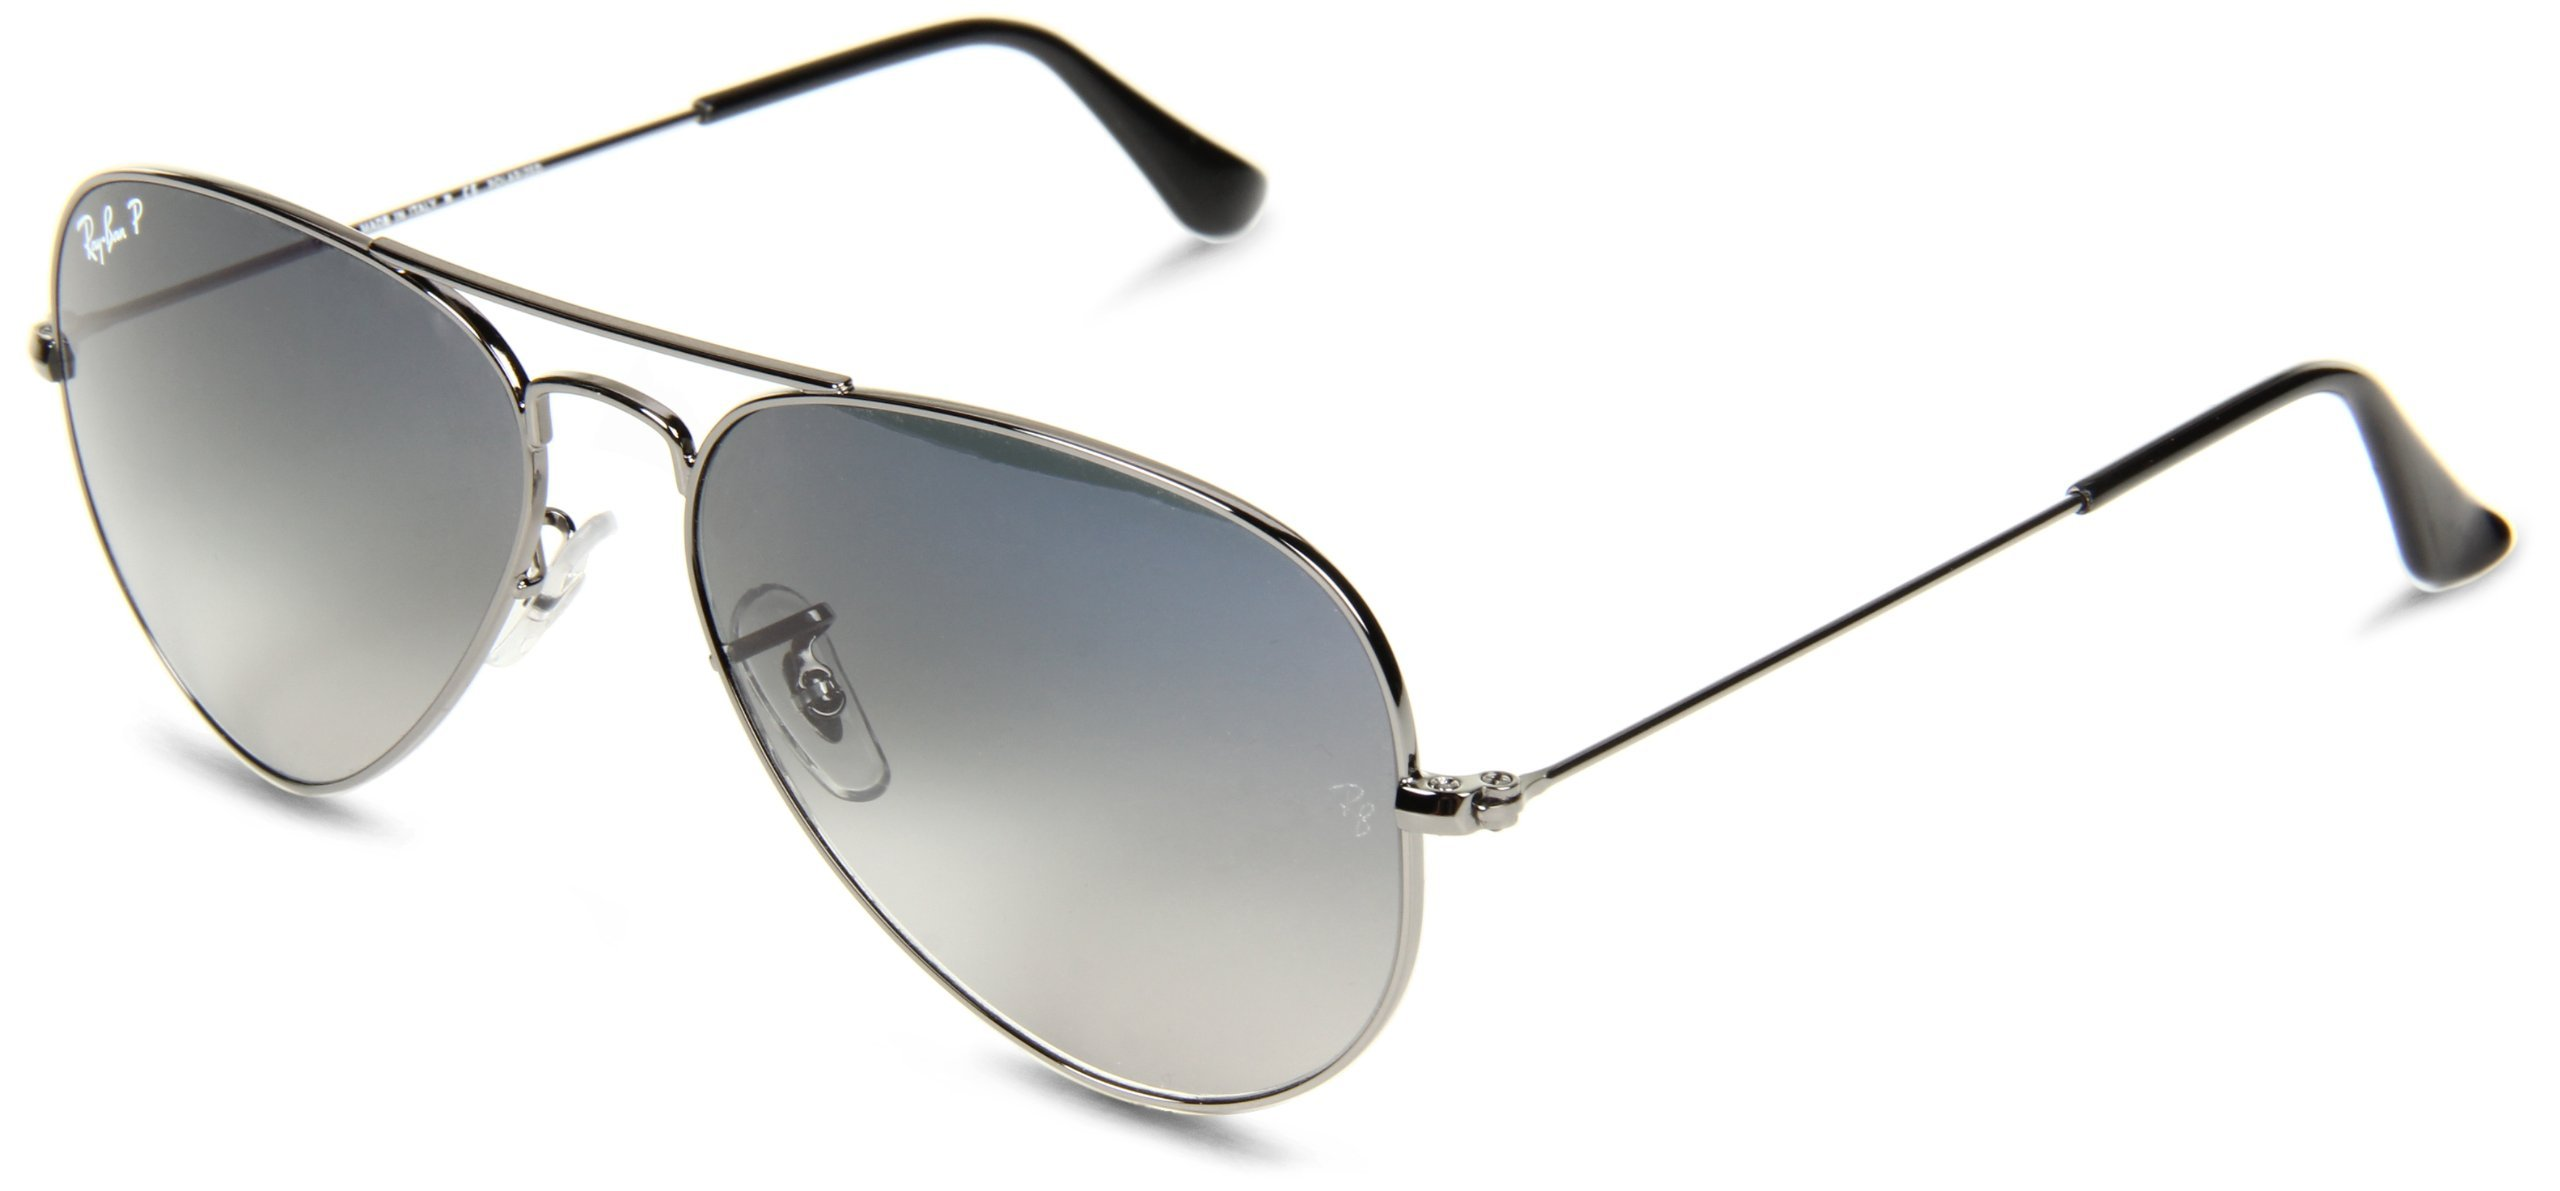 RAY-BAN RB3025 Aviator Large Metal Polarized Sunglasses, Gunmetal/Polarized Blue Gradient, 55 mm by RAY-BAN